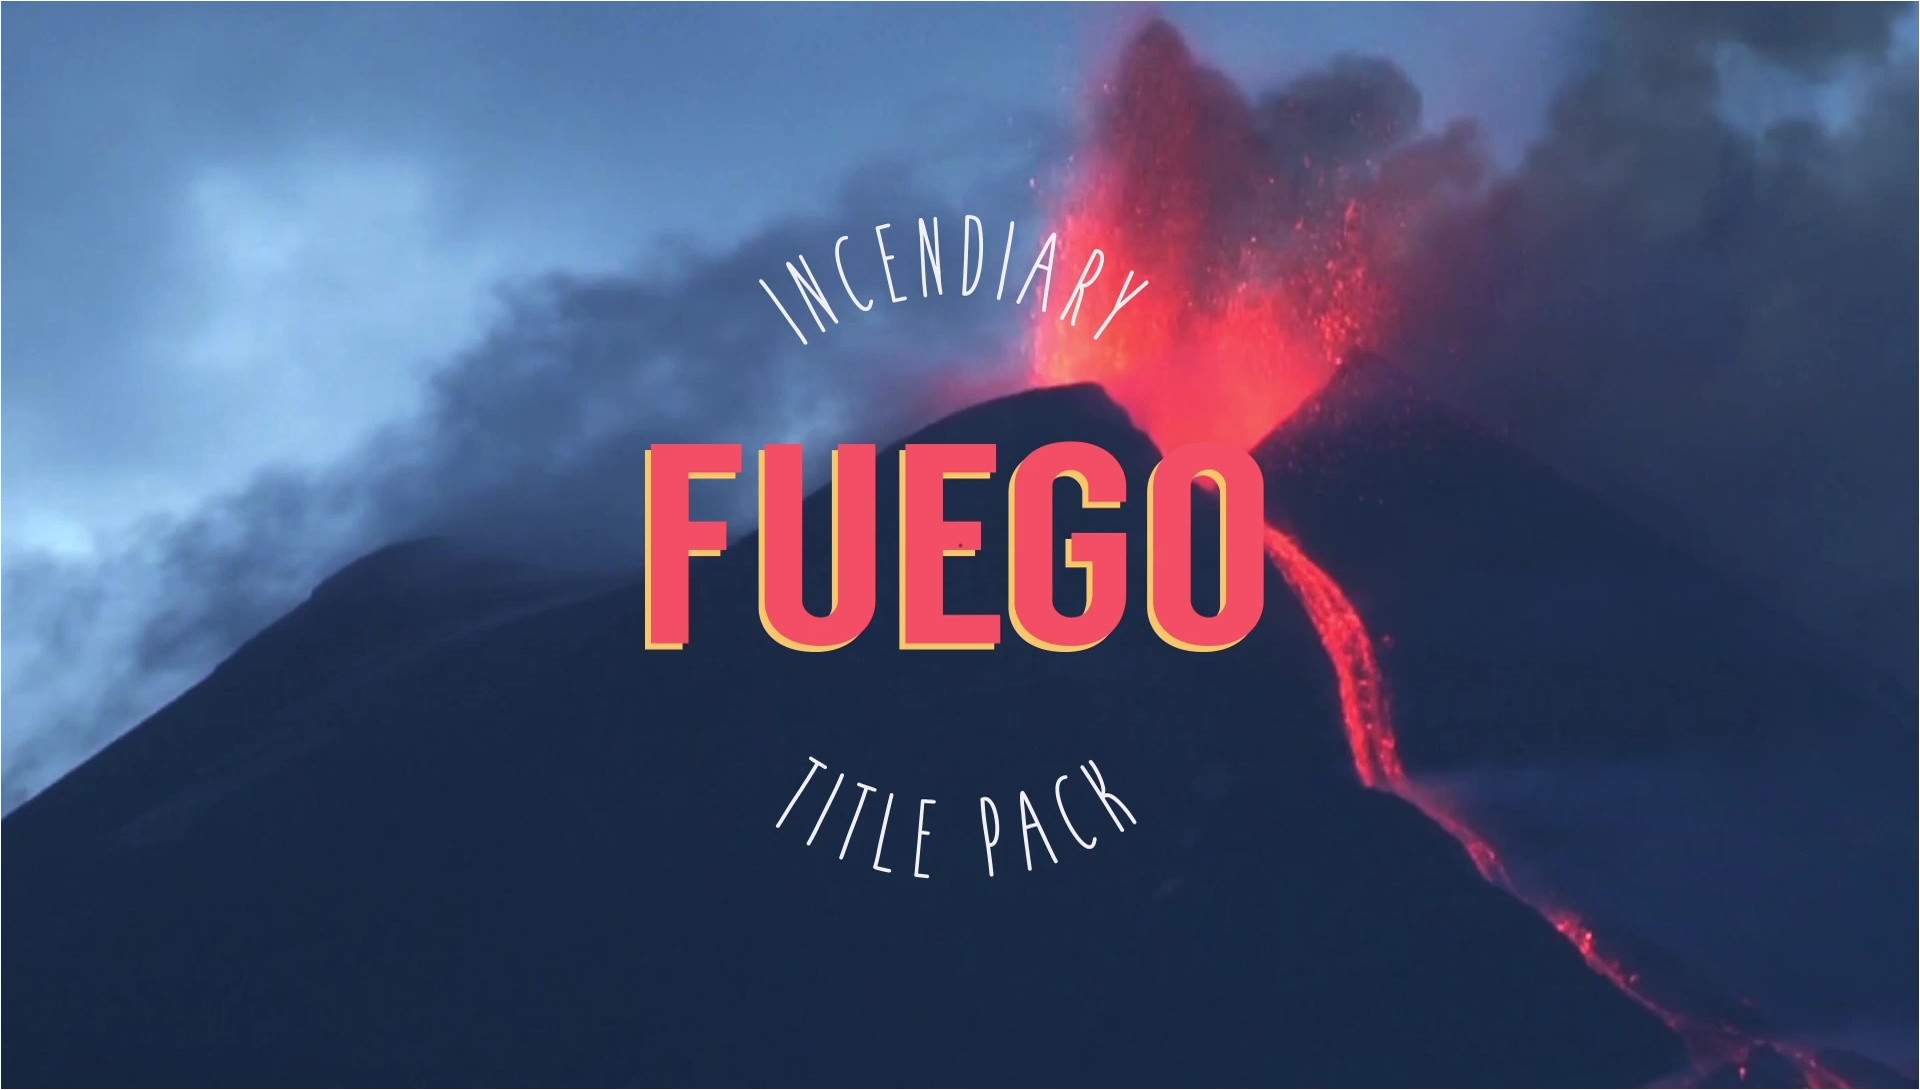 Buy after Effects Templates Fuego Incendiary Title Pack after Effects Template